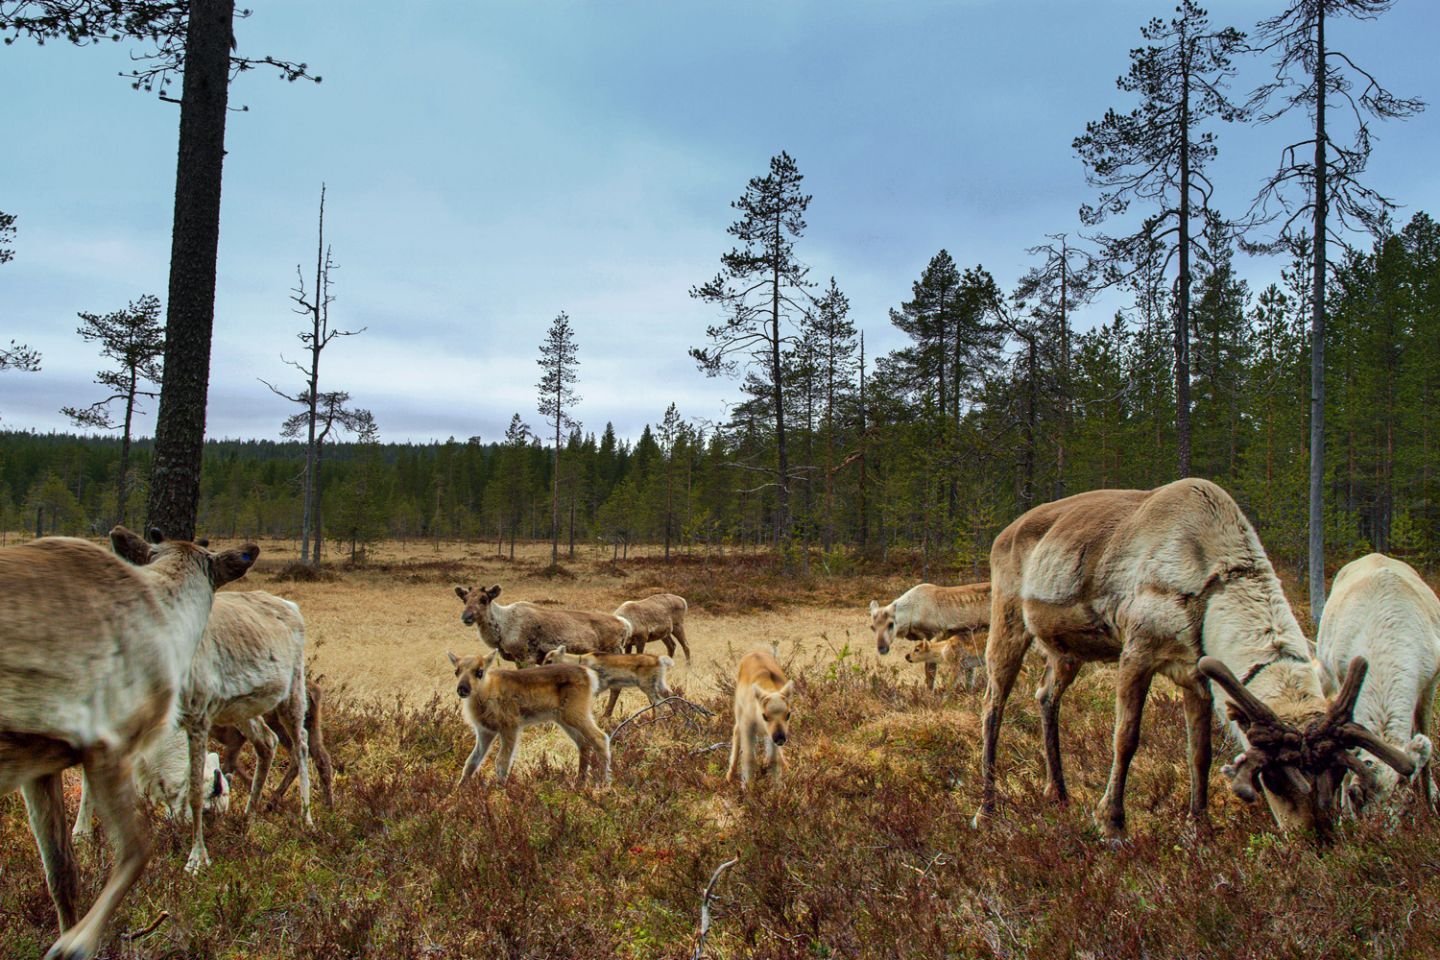 Reindeer in Salla, Sound of Lapland, SCAPES